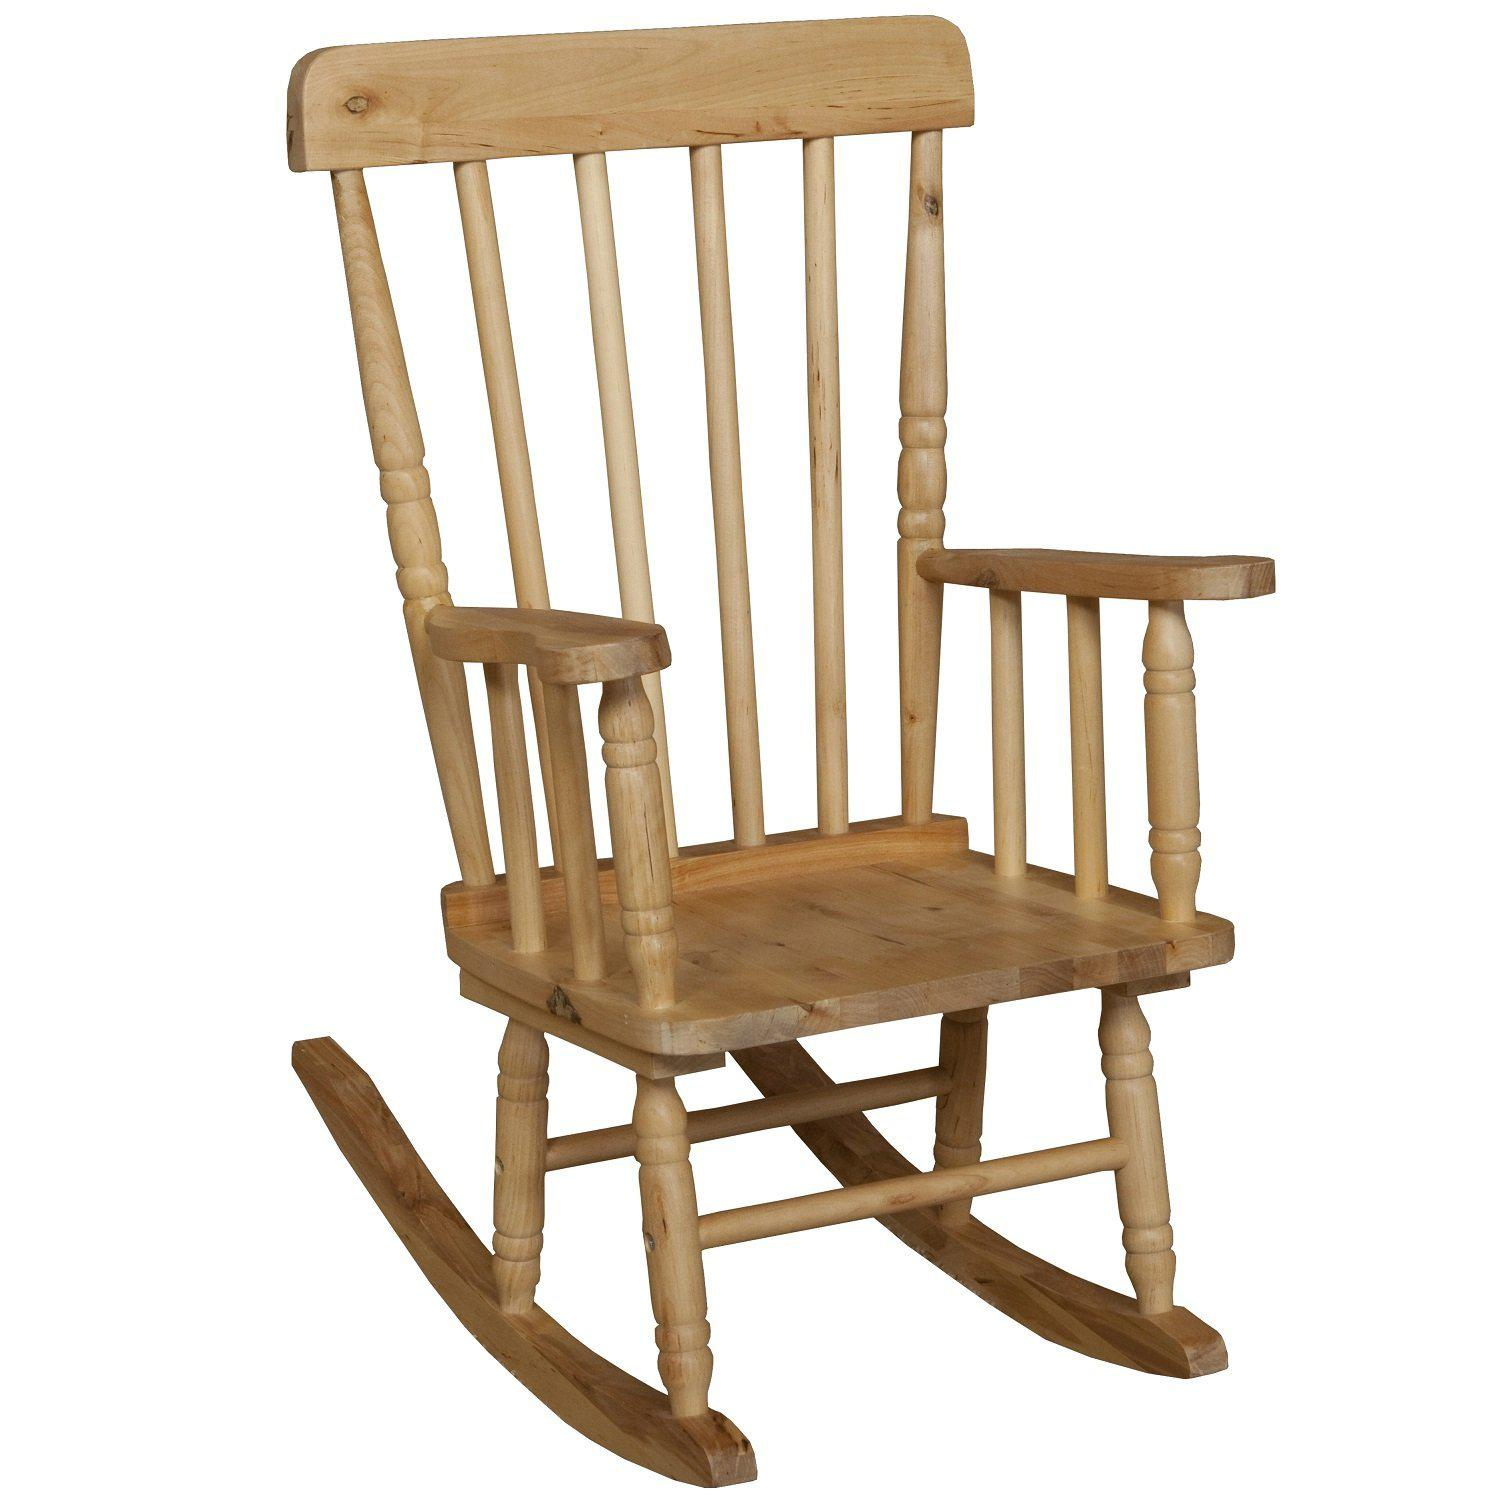 "Wood Designs Children's Rocker 10""H Seat-Pre-School Furniture-"